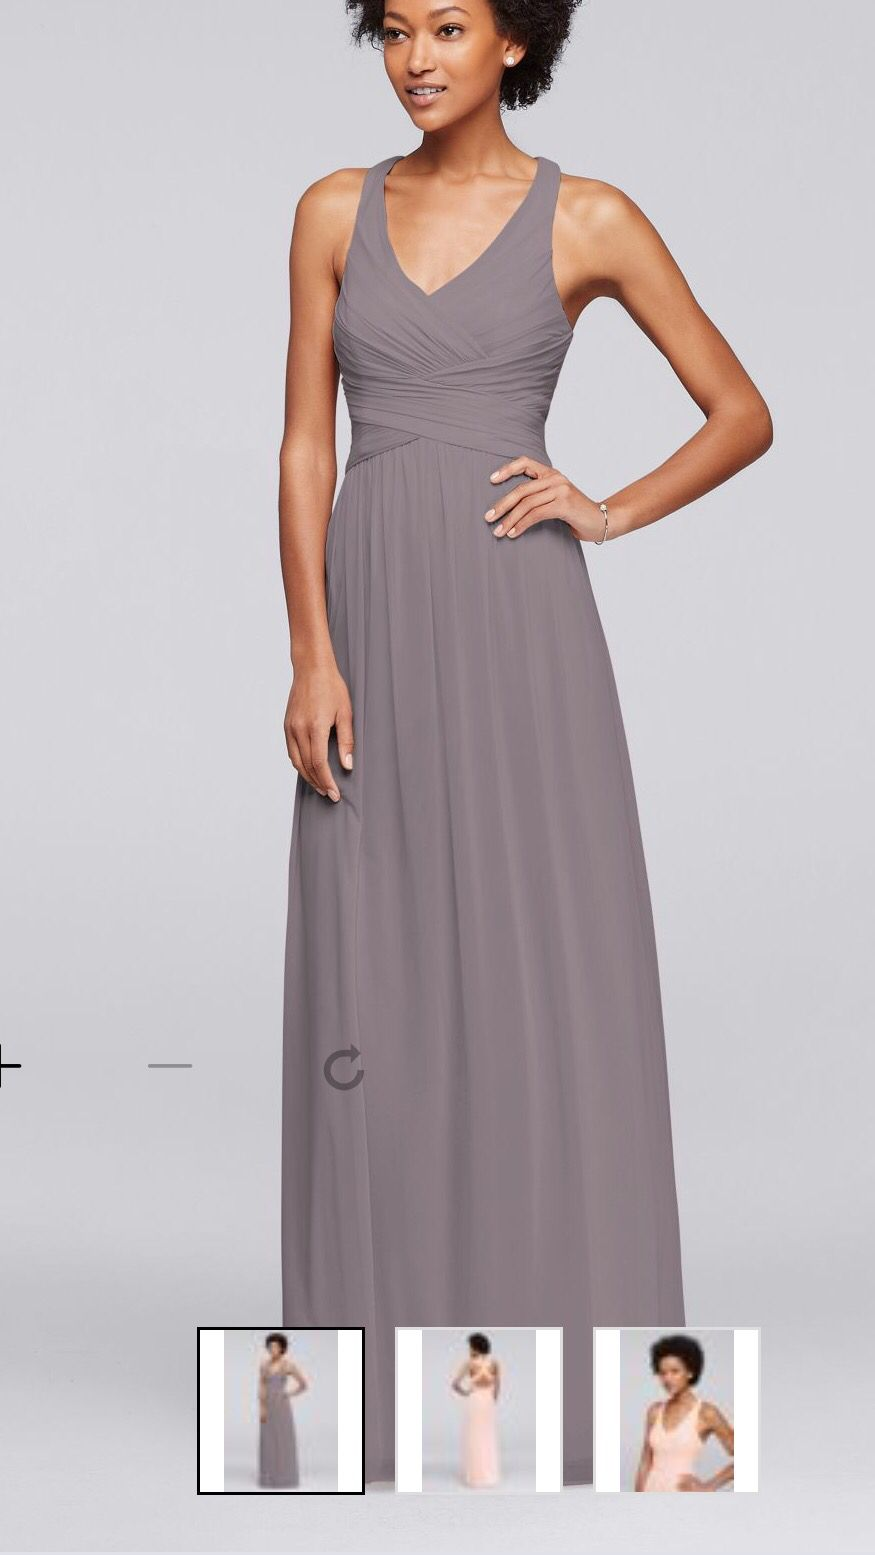 c05e276a6ee Portobello David s Bridal Bridesmaid dress. For Bridesmaids. And petal for  Maids of Honor